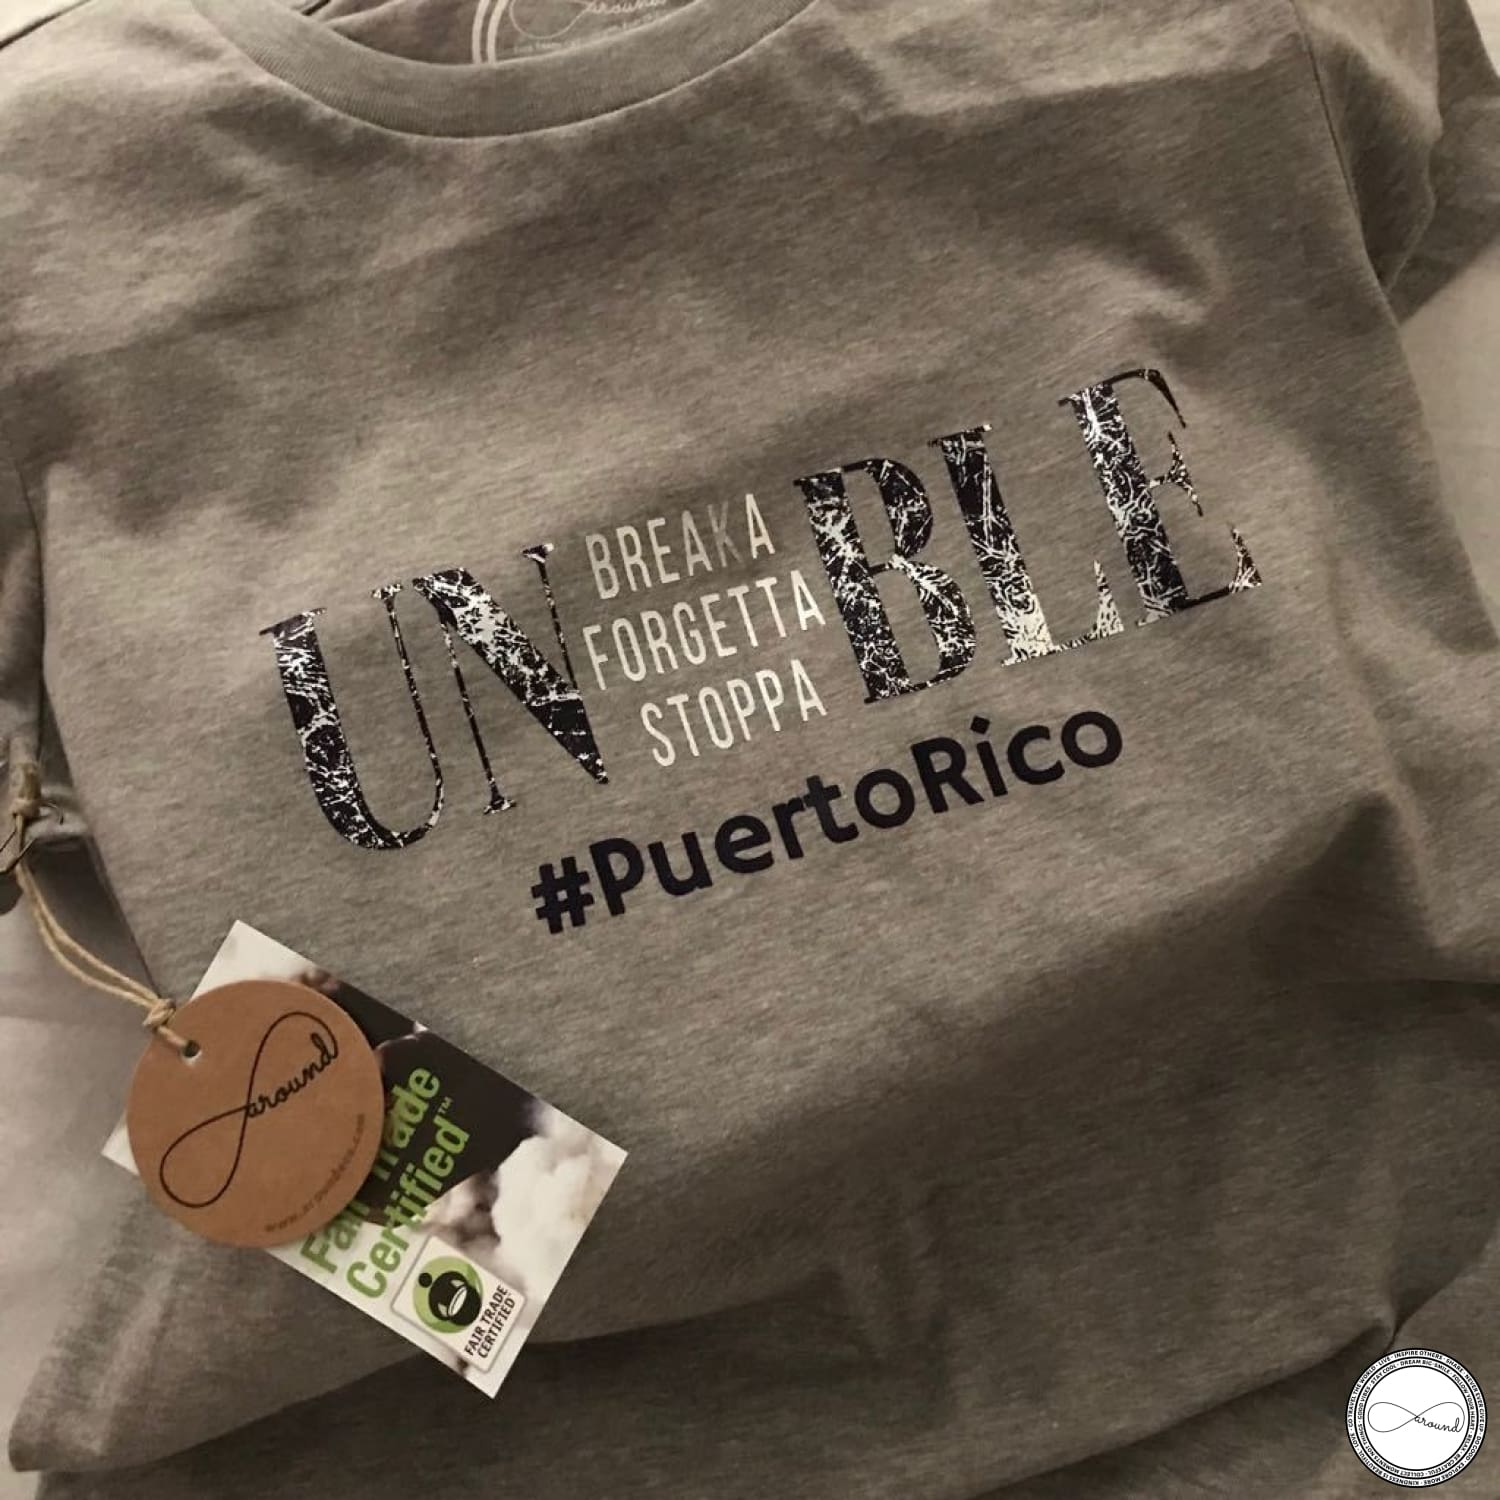 Limited Edition For Puerto Rico - Unbreakable Unstoppable Unforgettable,  aroundeco tshirt, buy t-shirts online, organic tshirt, fair trade tshirt, travel tees, travel tshirt, recycle tshirt, sustainable fashion tshirt, eco-friendly tshirt